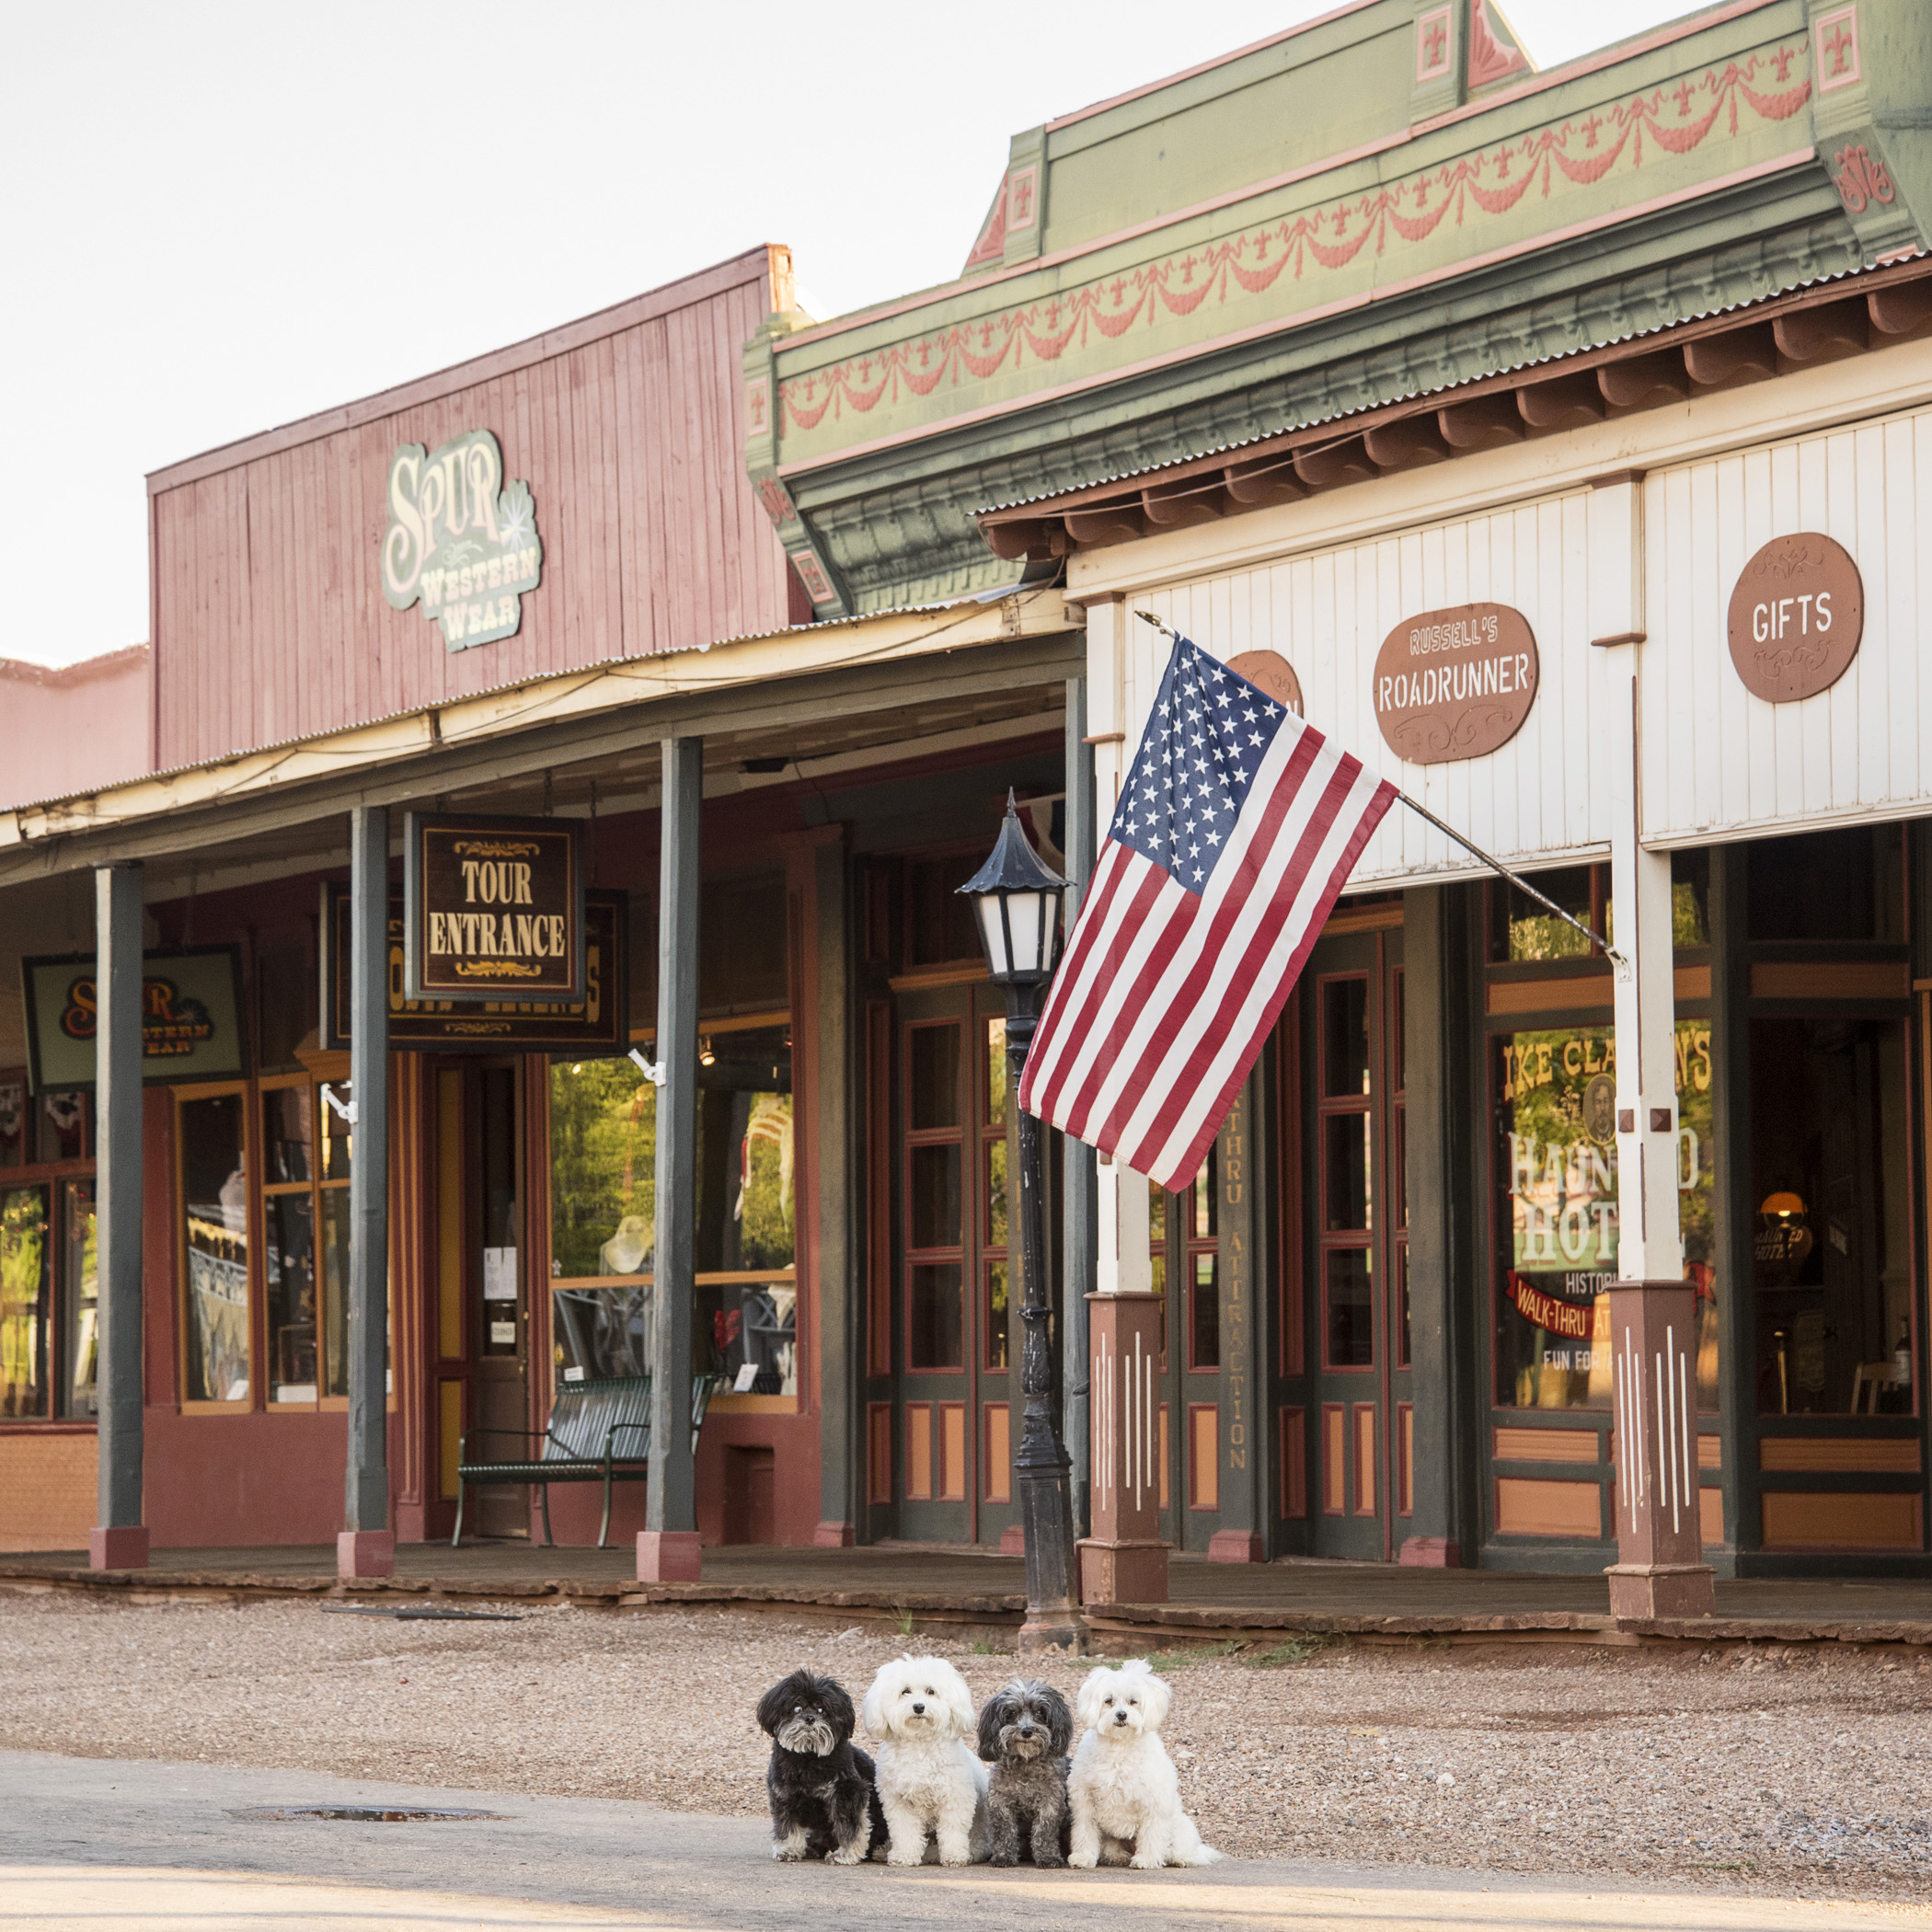 We left the extra-terrestrials behind, and strolled into Tombstone, AZ. Everyone scattered and hid…it was so quiet you could hear the clank of our spurs.